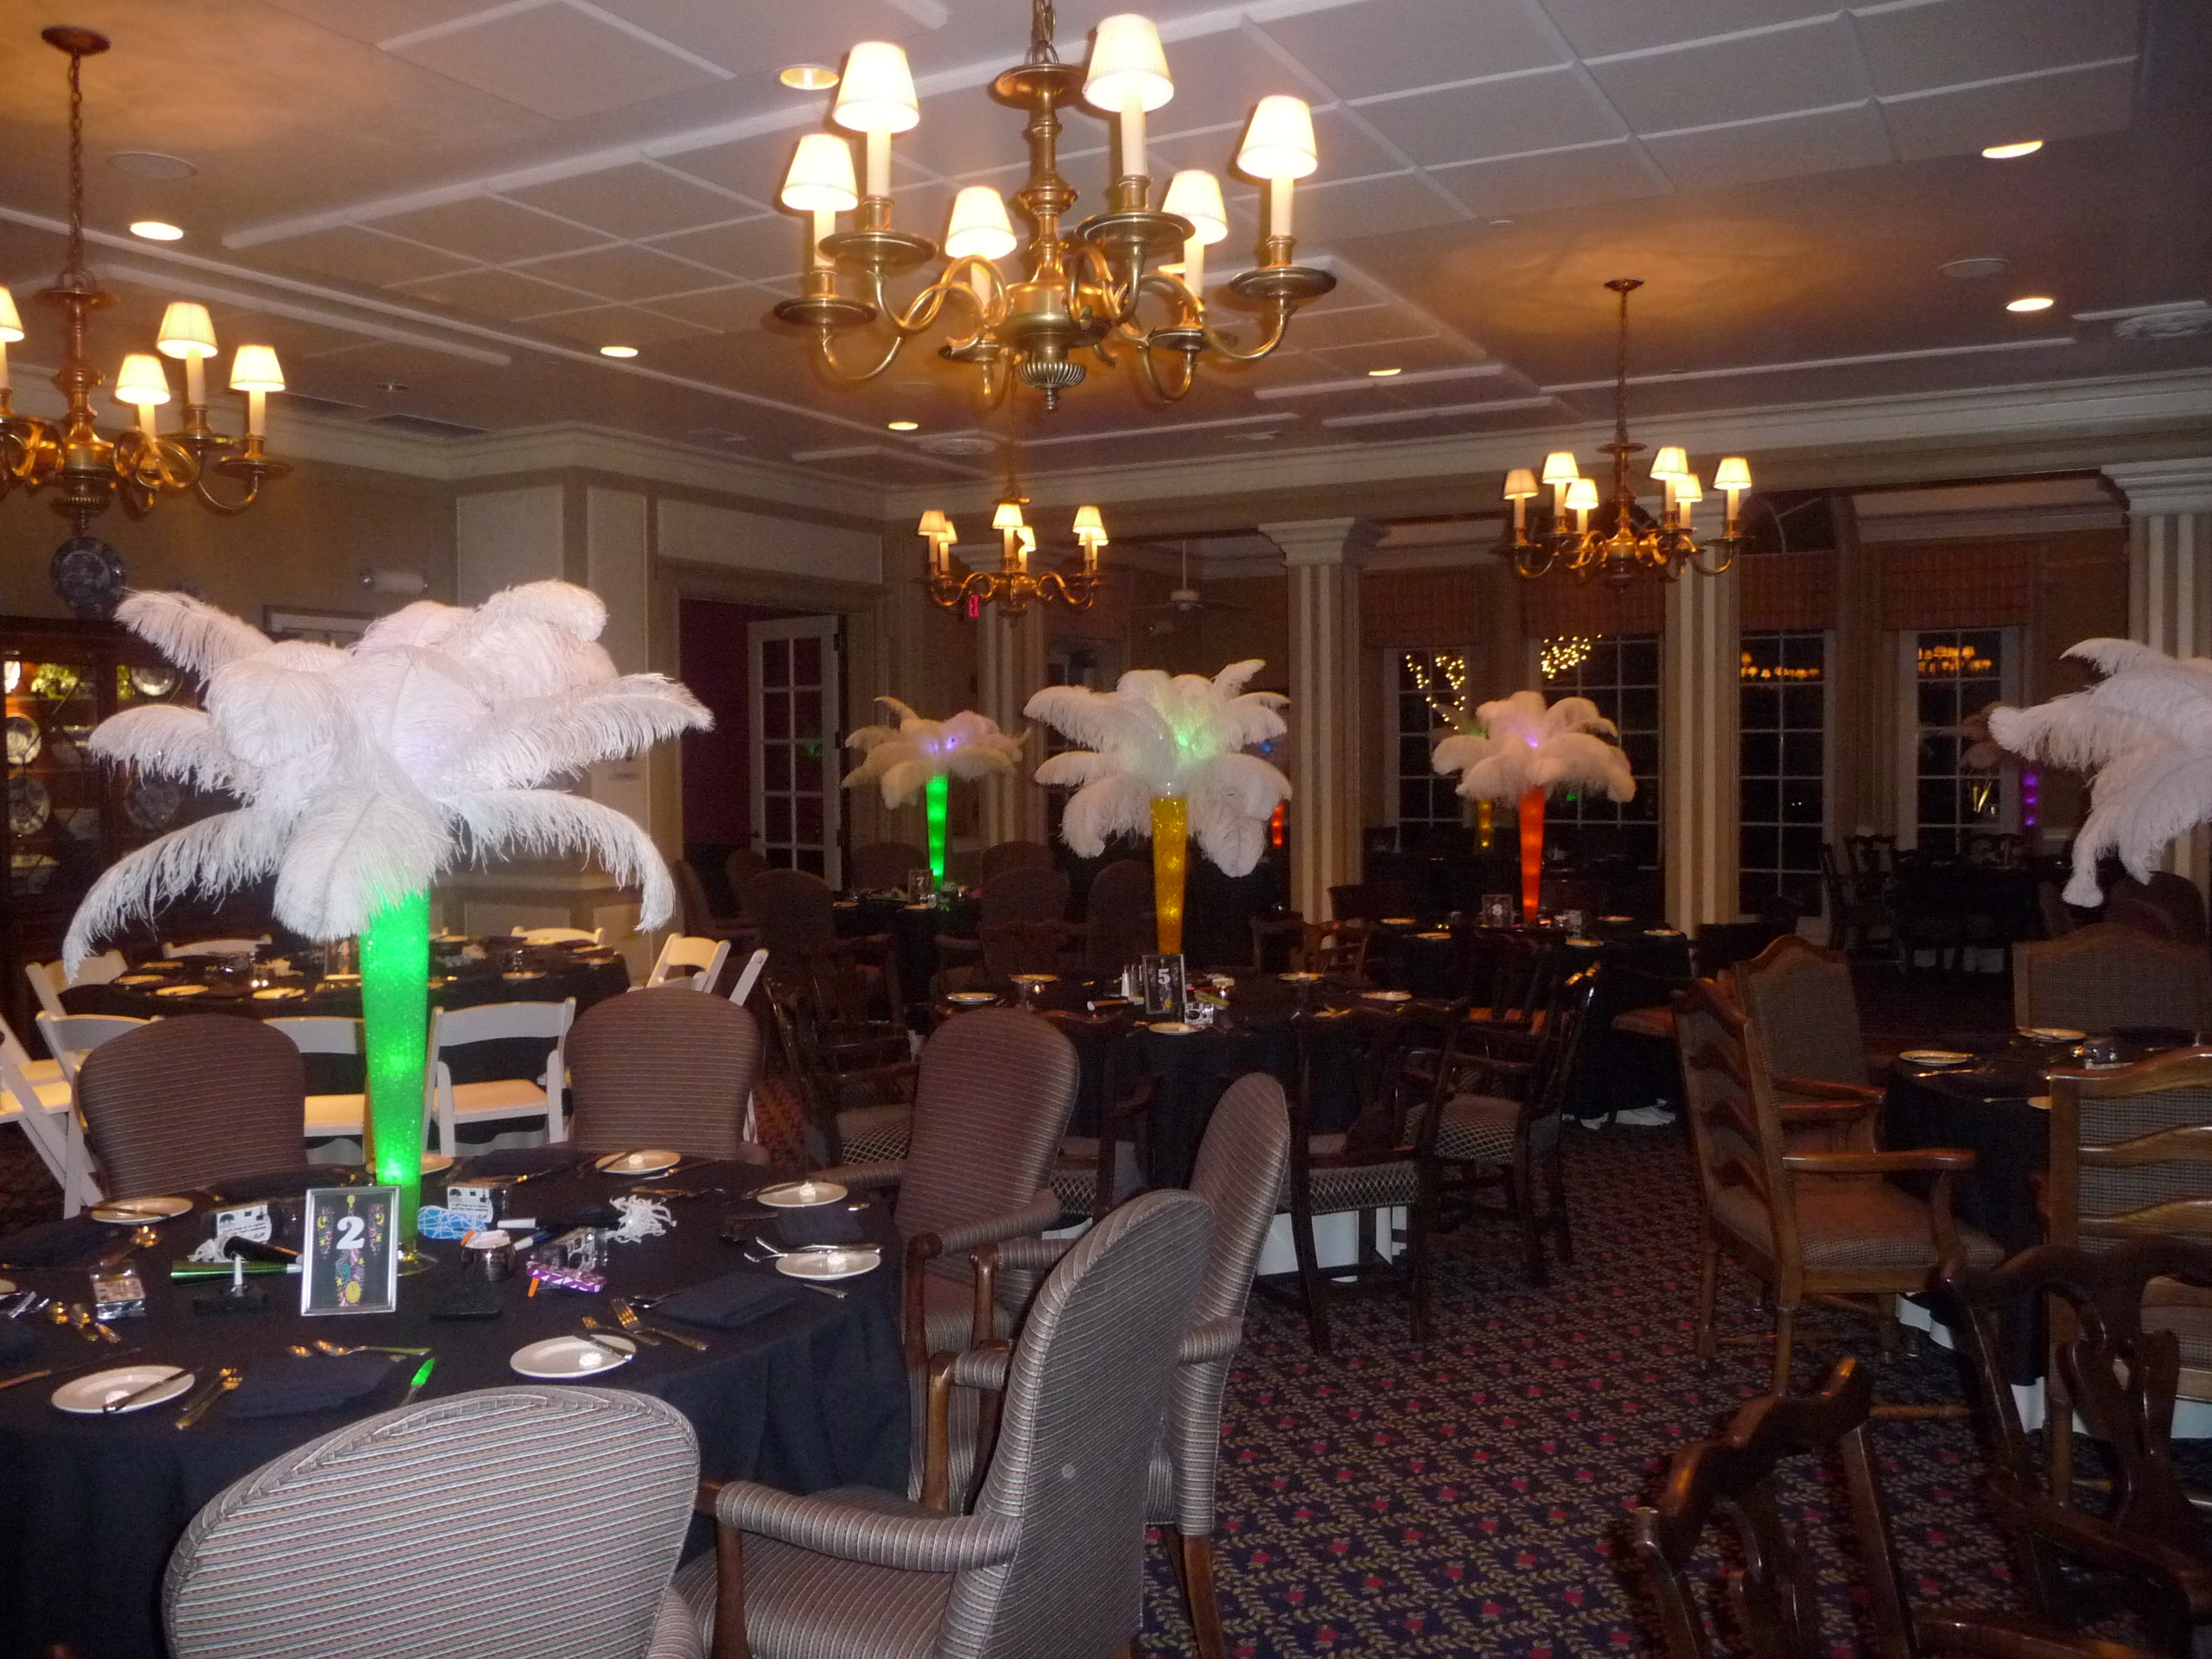 Beauty, Ceremony, Inspiration, Reception, Flowers & Decor, white, yellow, orange, pink, red, purple, blue, green, brown, black, gold, Feathers, Ceremony Flowers, Centerpieces, Flowers, Board, Rental, Feather, Ostrich, Savannah event decor